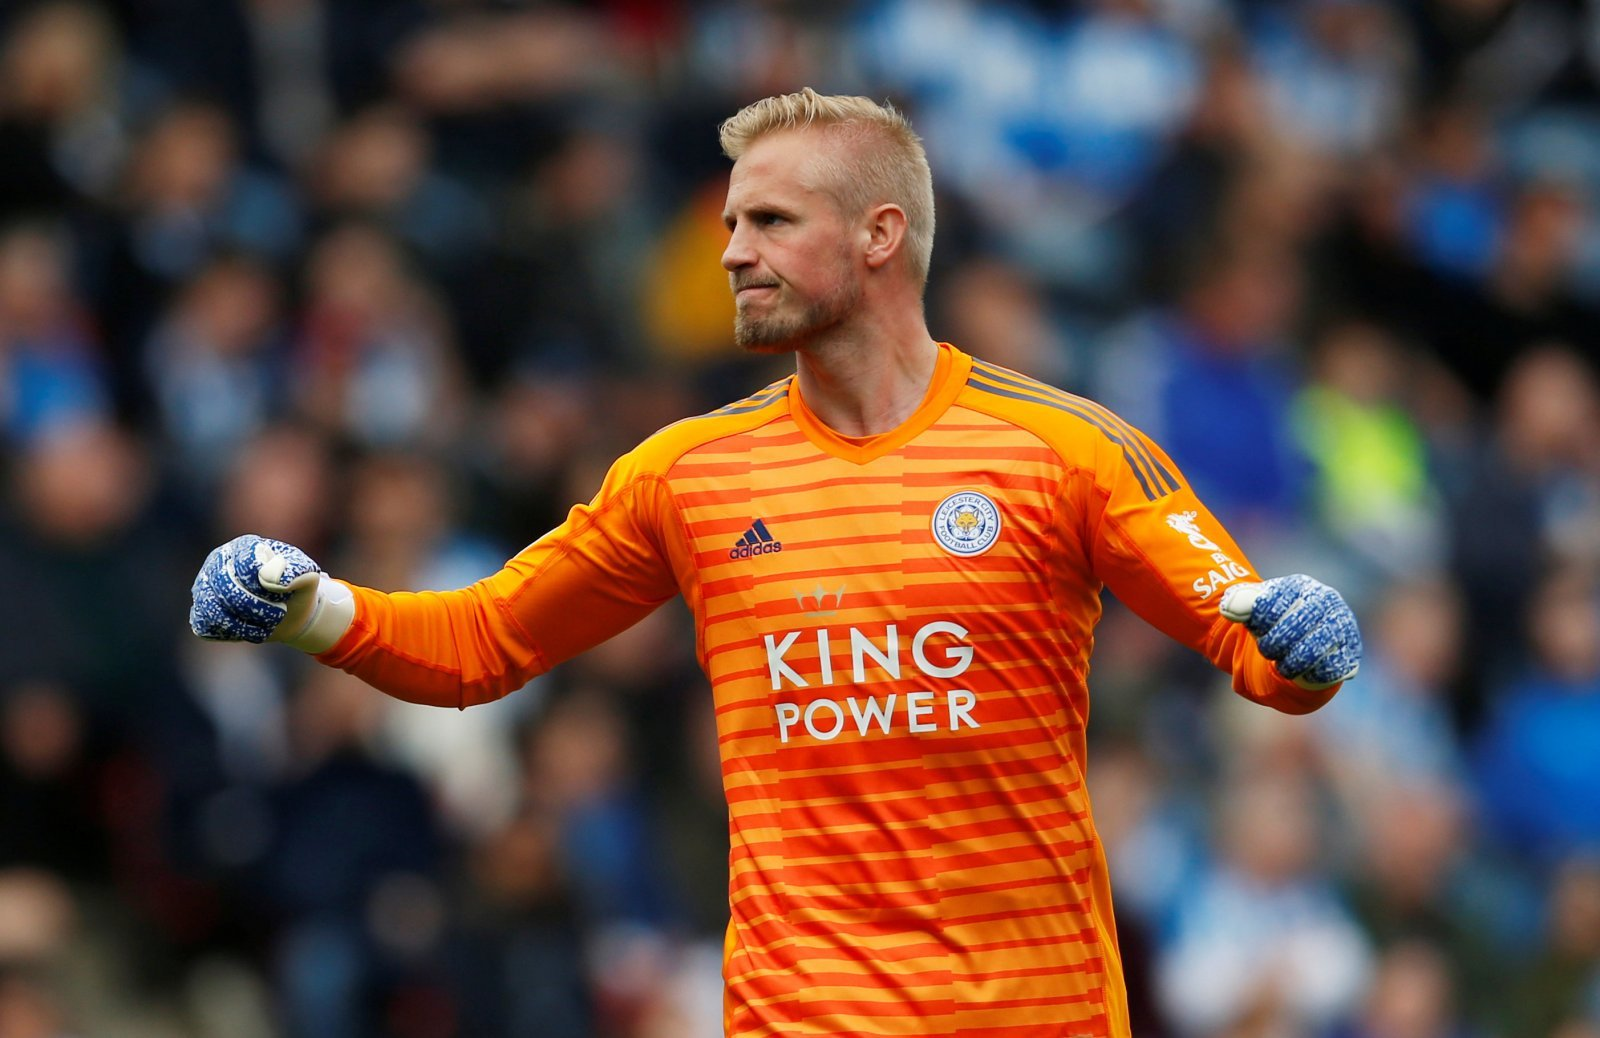 Leicester City: Fans share love for 'fine wine' Kasper Schmeichel on his birthday